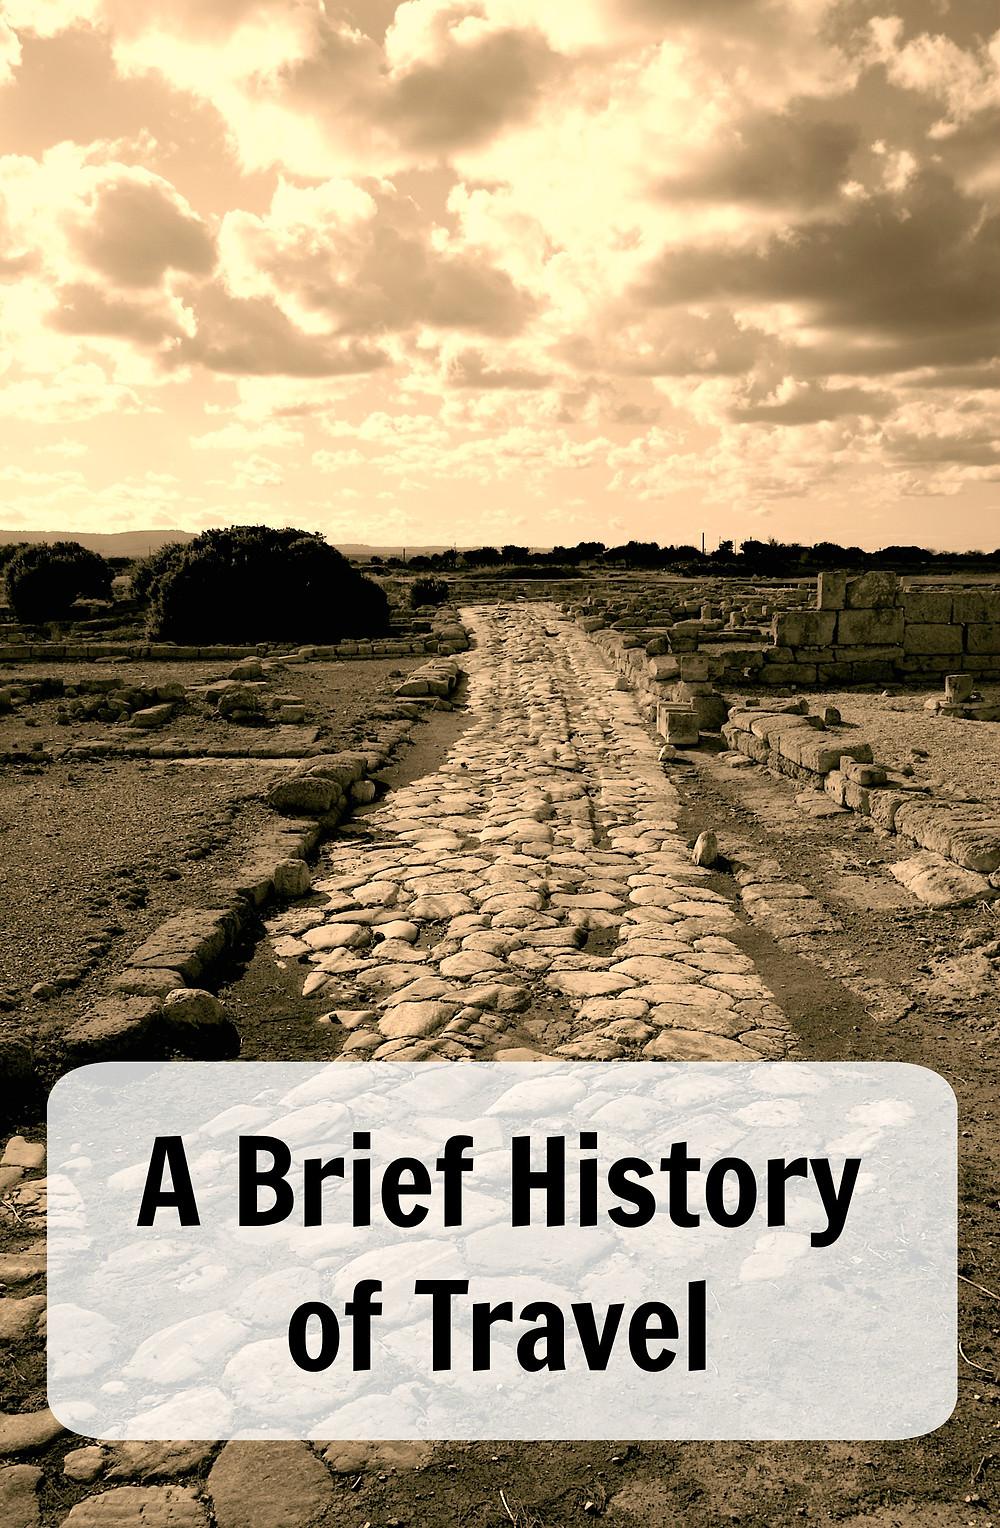 A brief history of travel